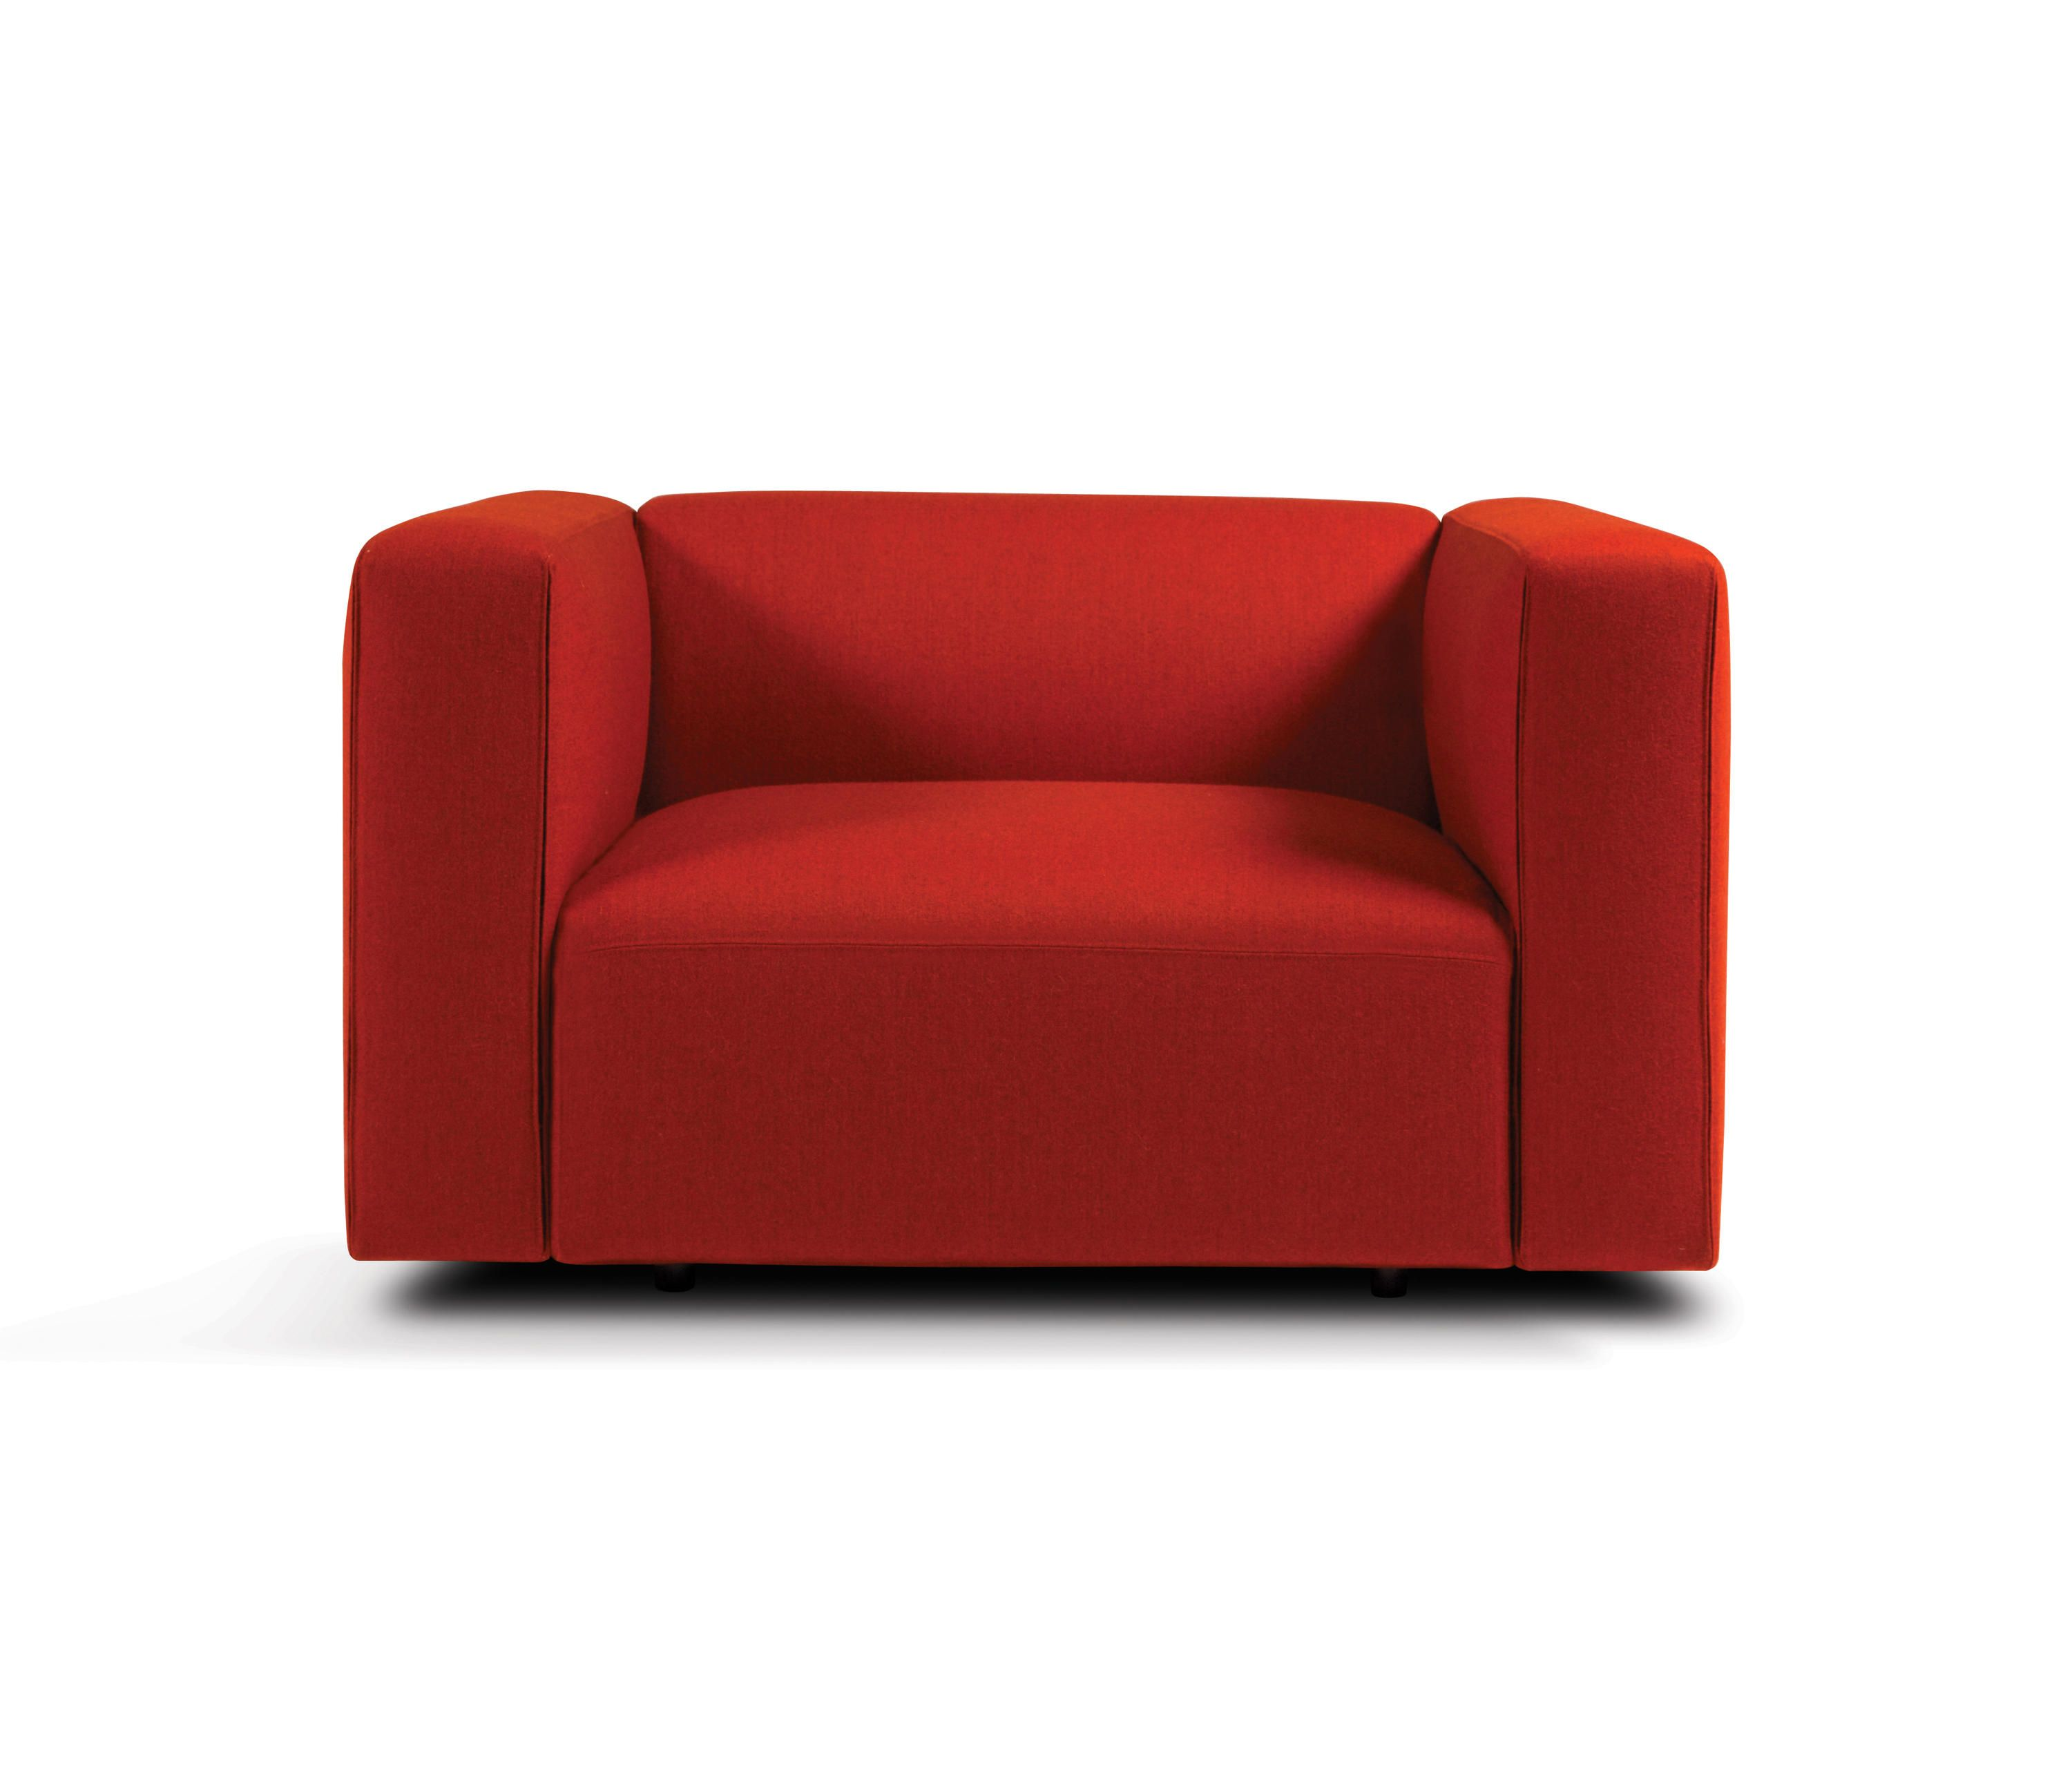 Match armchair by Prostoria Lounge chairs